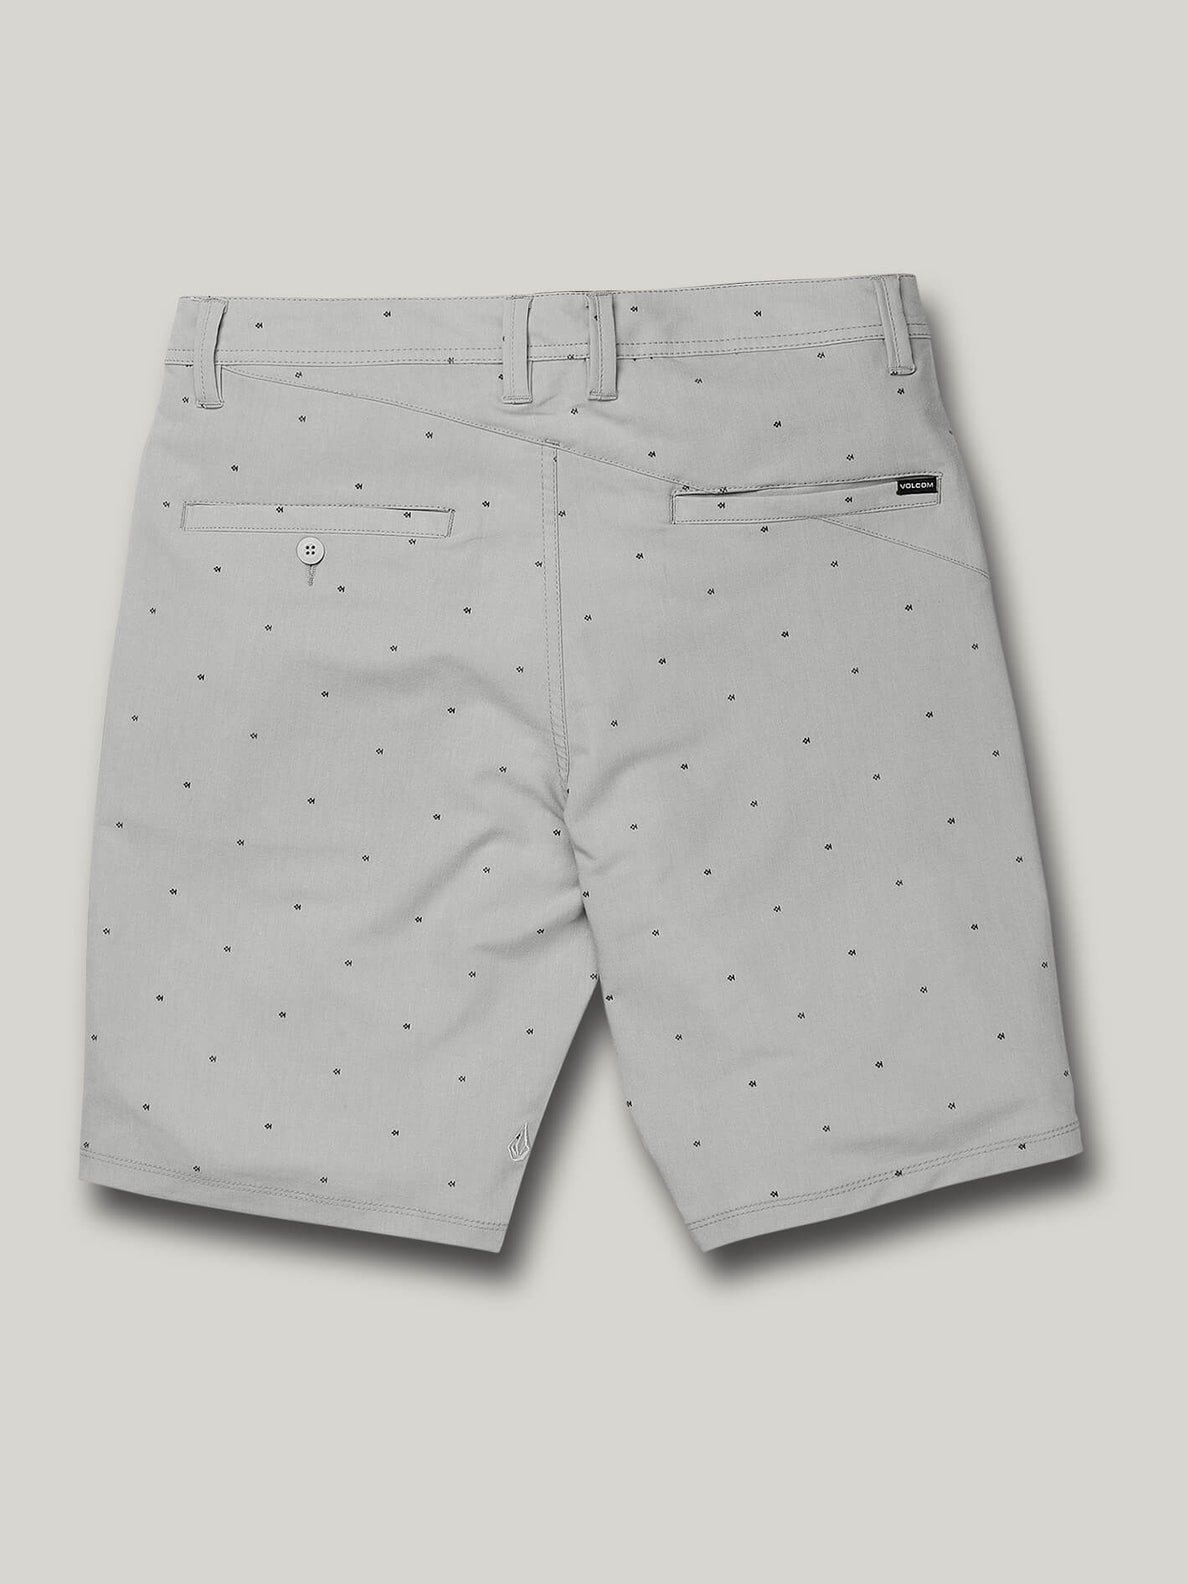 Frickin Surf N' Turf Mix Hybrid Shorts - Tower Grey (A3212003_TWR) [B]